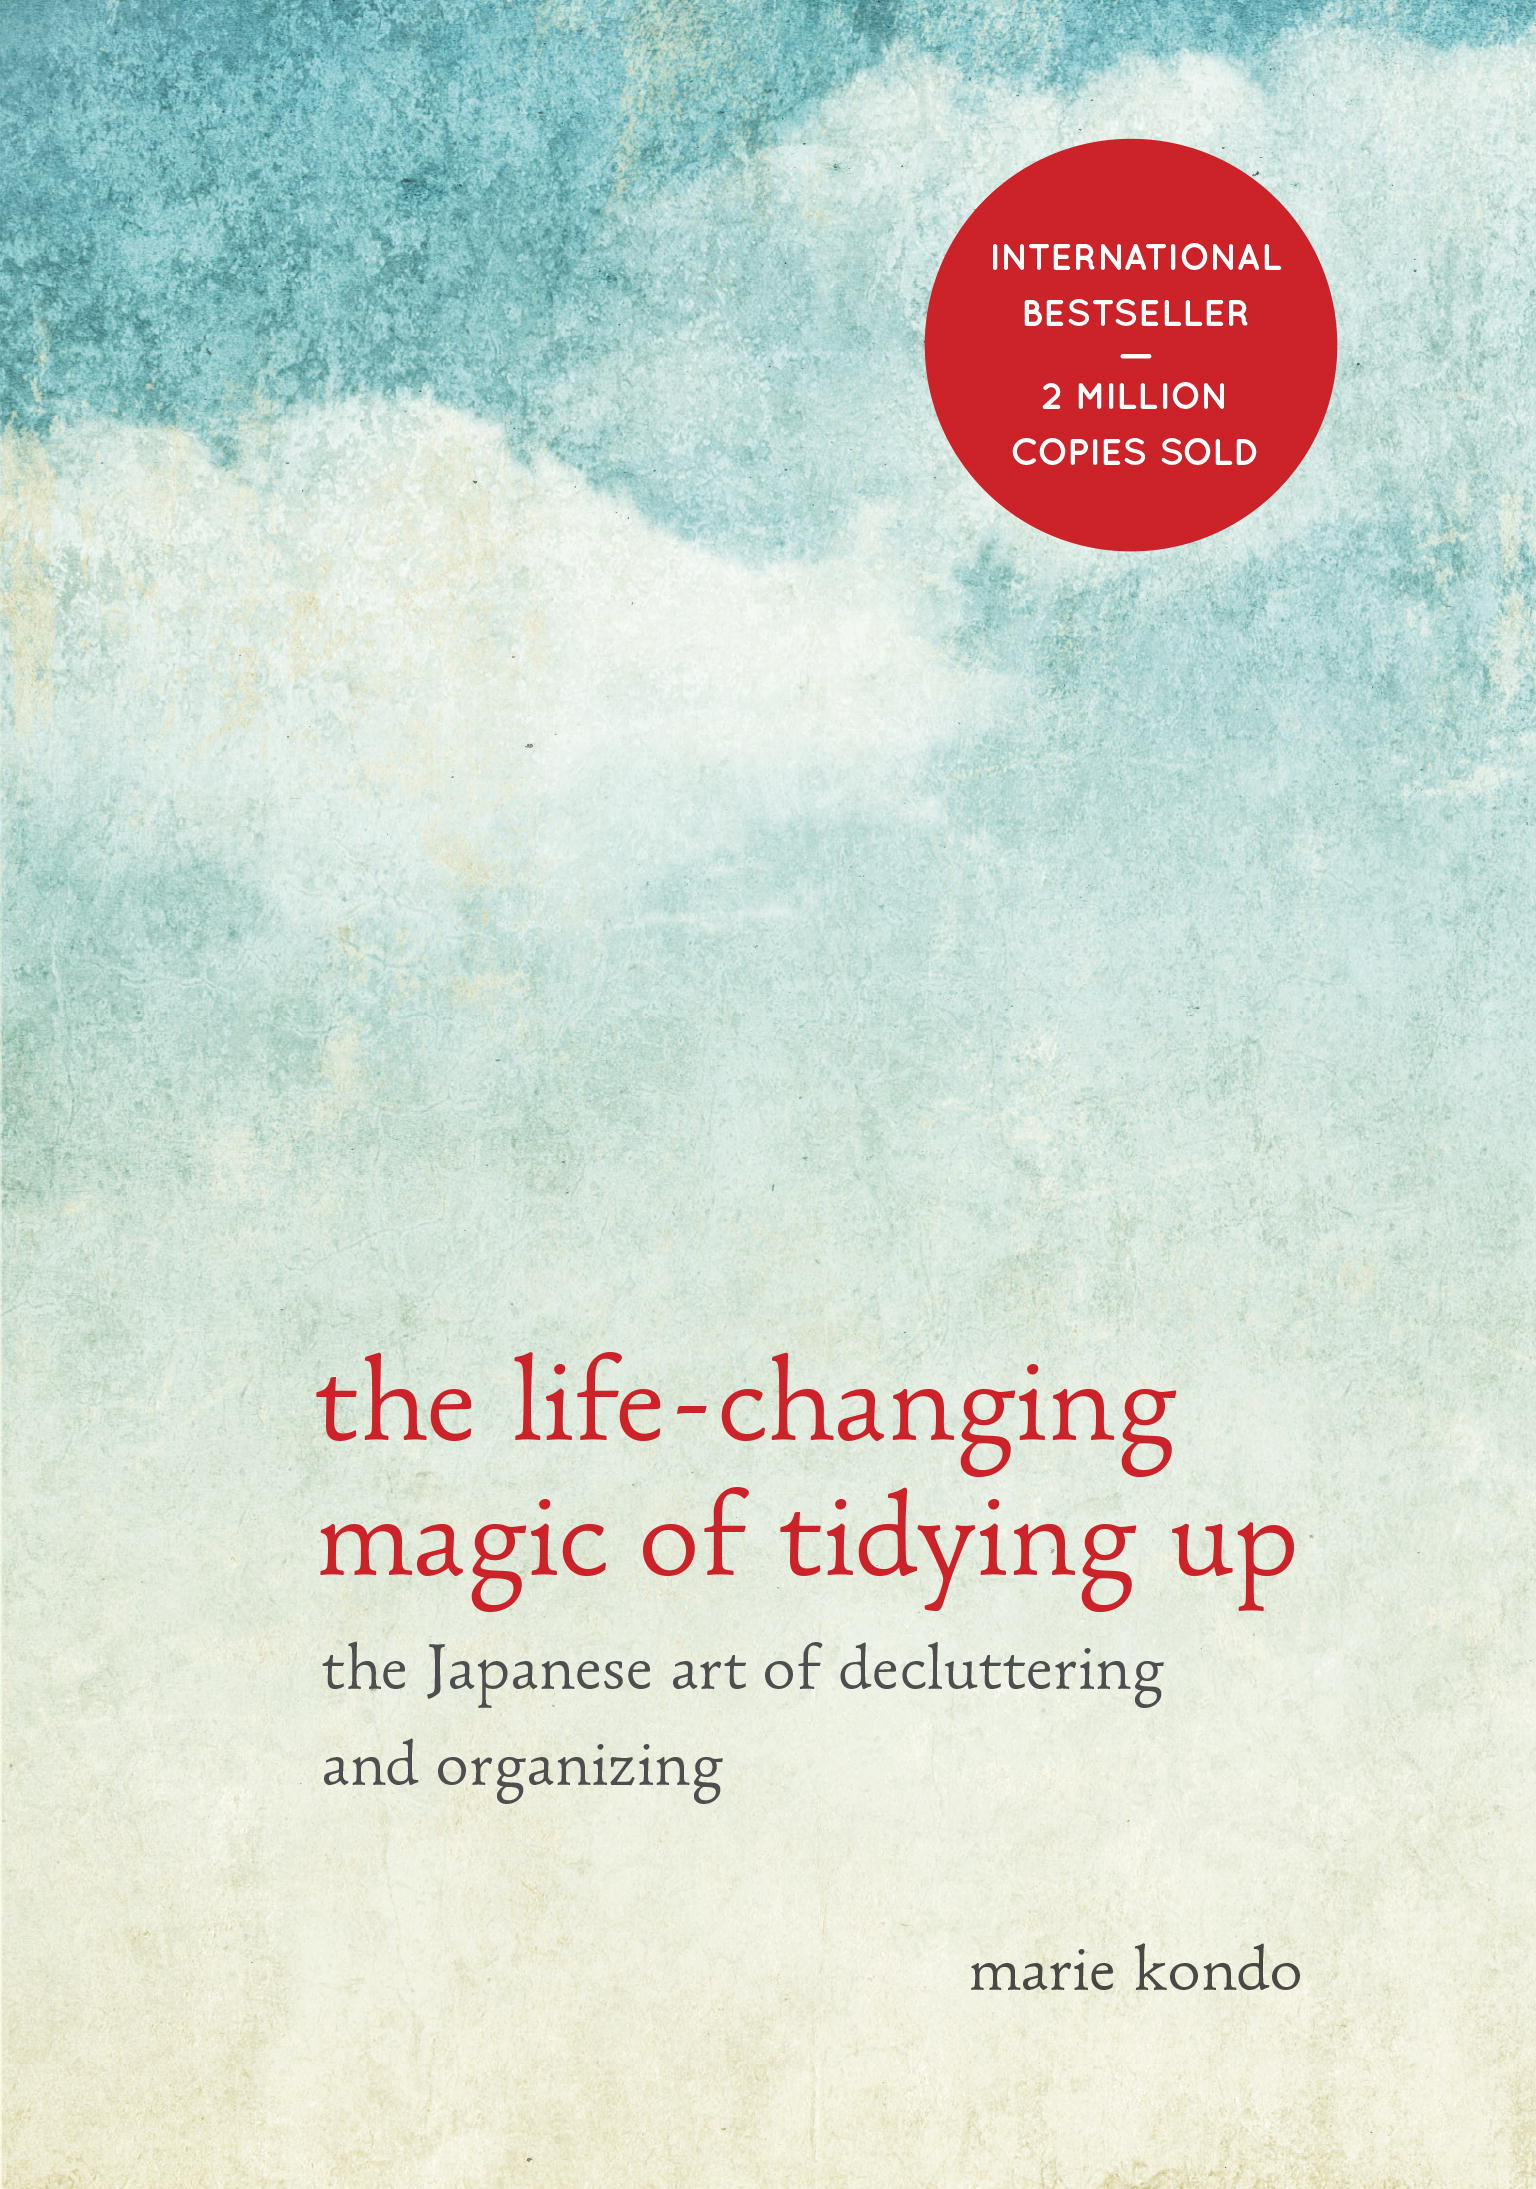 Home Ec: 6 Books to Inspire and Help with Decluttering